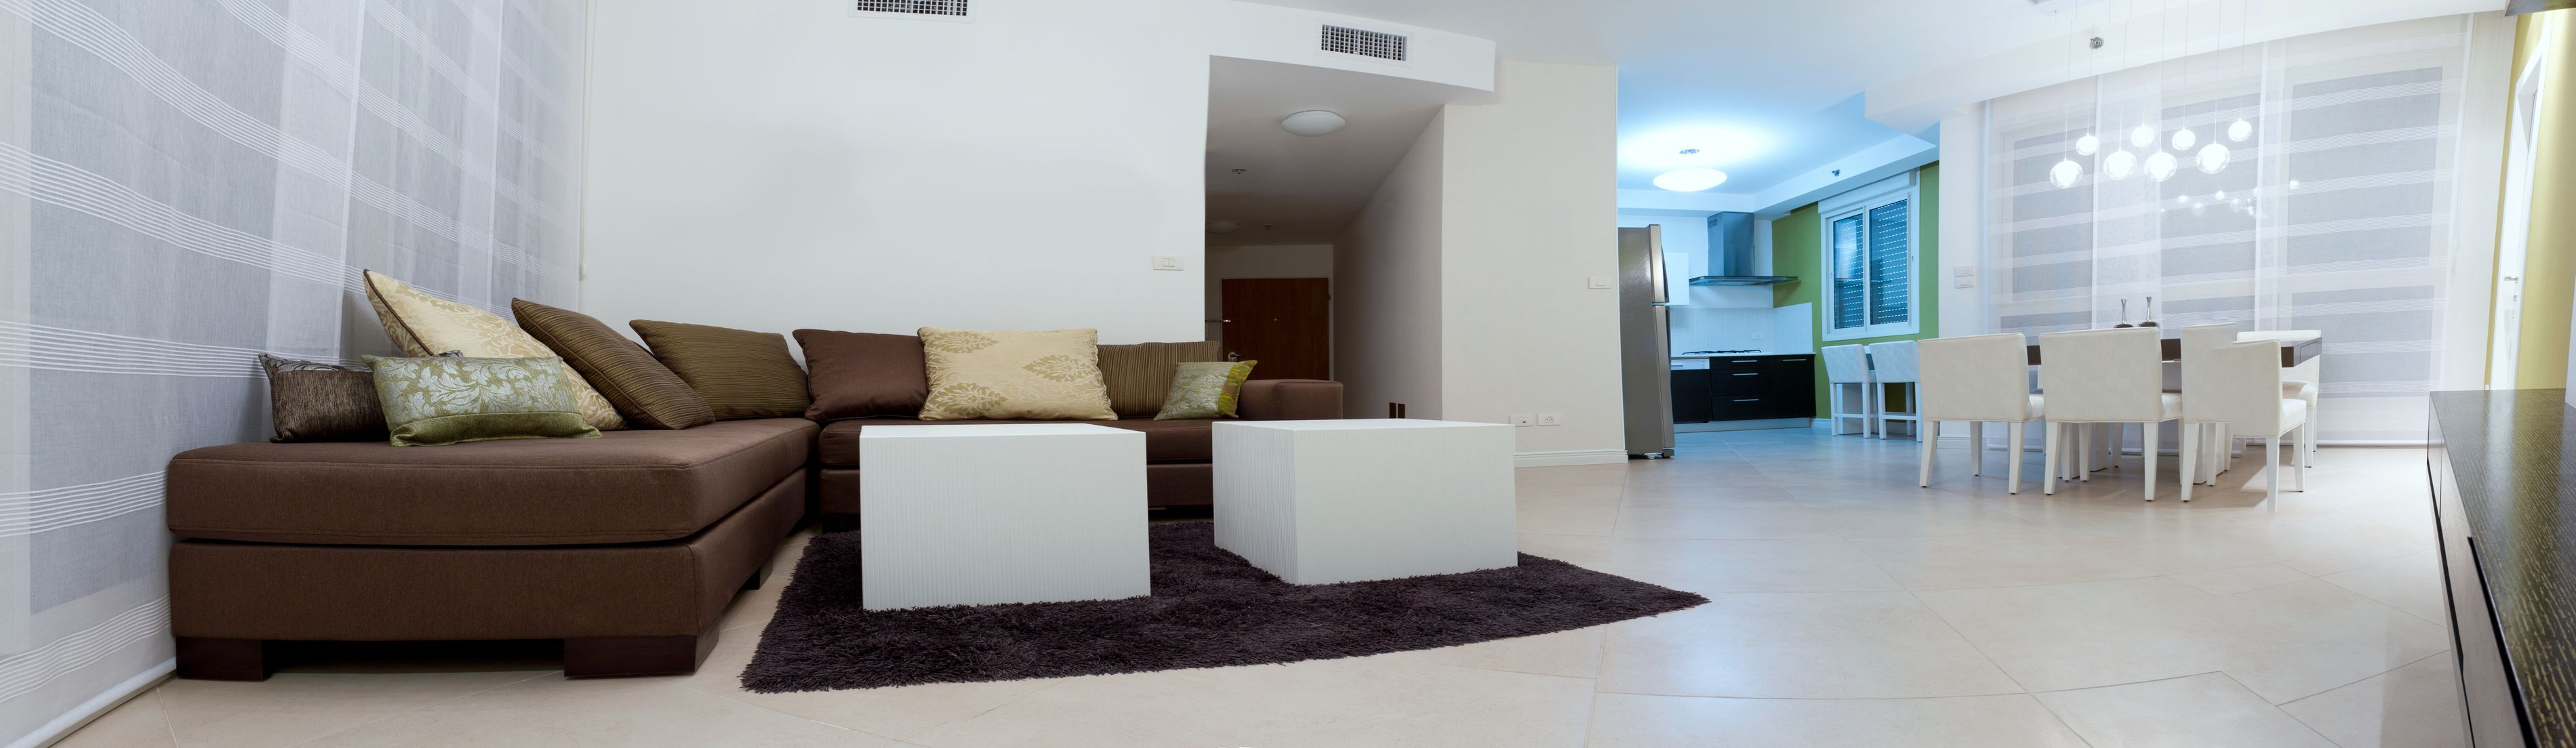 Choose One of the Top Basement Remodeling Companies in Suffield, CT